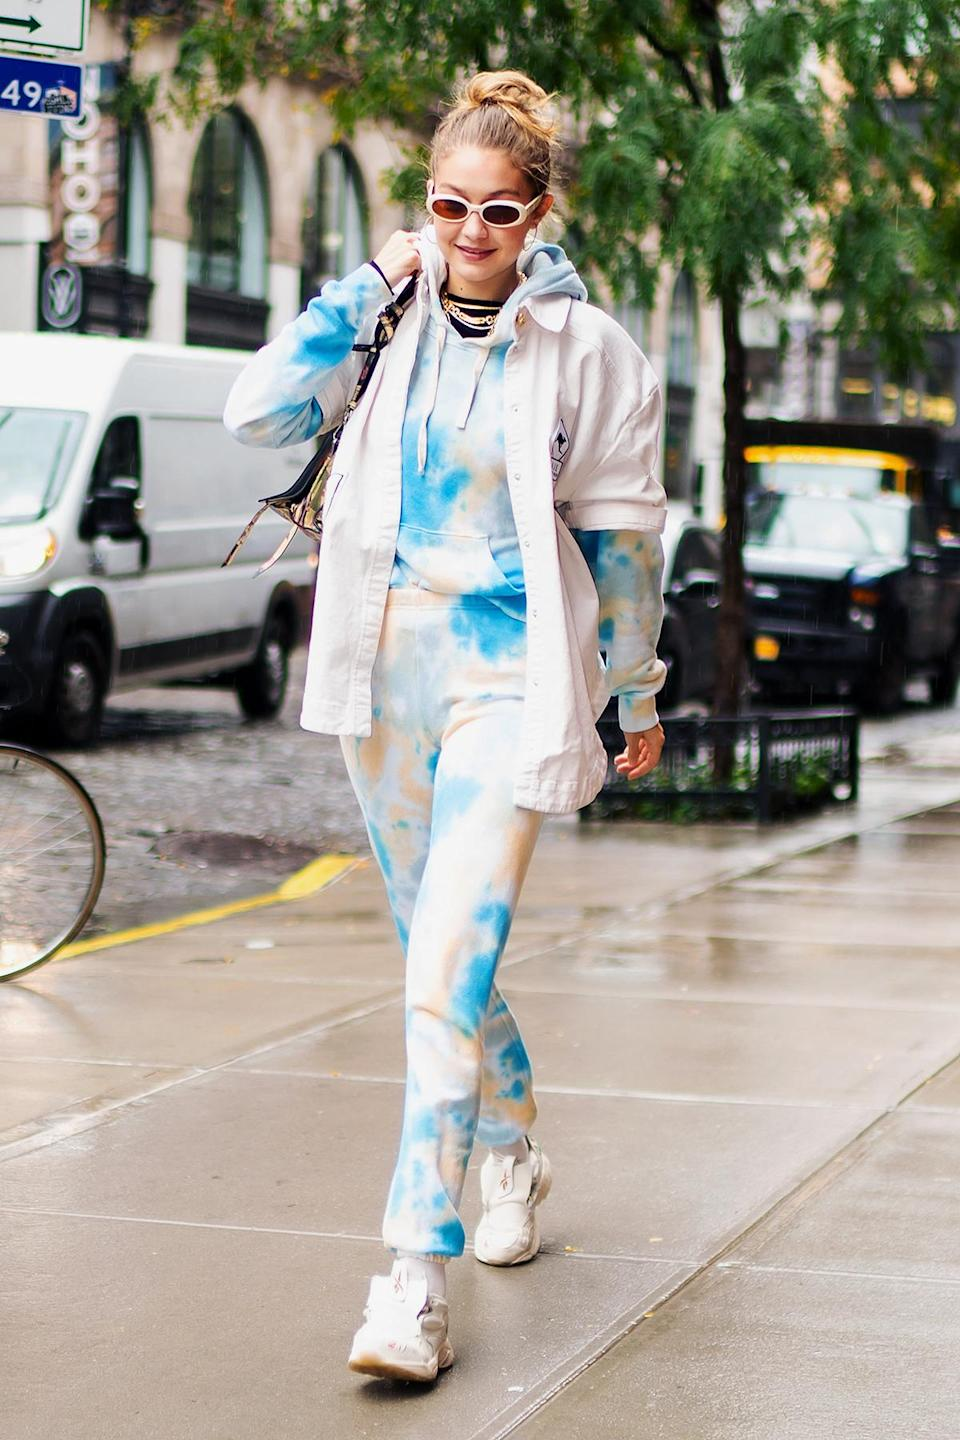 """<p>Thanks to its nostalgic vibe and DIY-ability, tie-dye became the official print of quarantine. Searches for it on Etsy surged 146 percent, and a slew of stars sported the trend, including Gigi Hadid rocking it from head-to-toe.</p> <p>If you still want to get in on the fun, we have everything you need to know about <a href=""""https://people.com/style/how-to-tie-dye-at-home/"""" rel=""""nofollow noopener"""" target=""""_blank"""" data-ylk=""""slk:DIY tie-dye, here"""" class=""""link rapid-noclick-resp"""">DIY tie-dye, here</a>. </p>"""